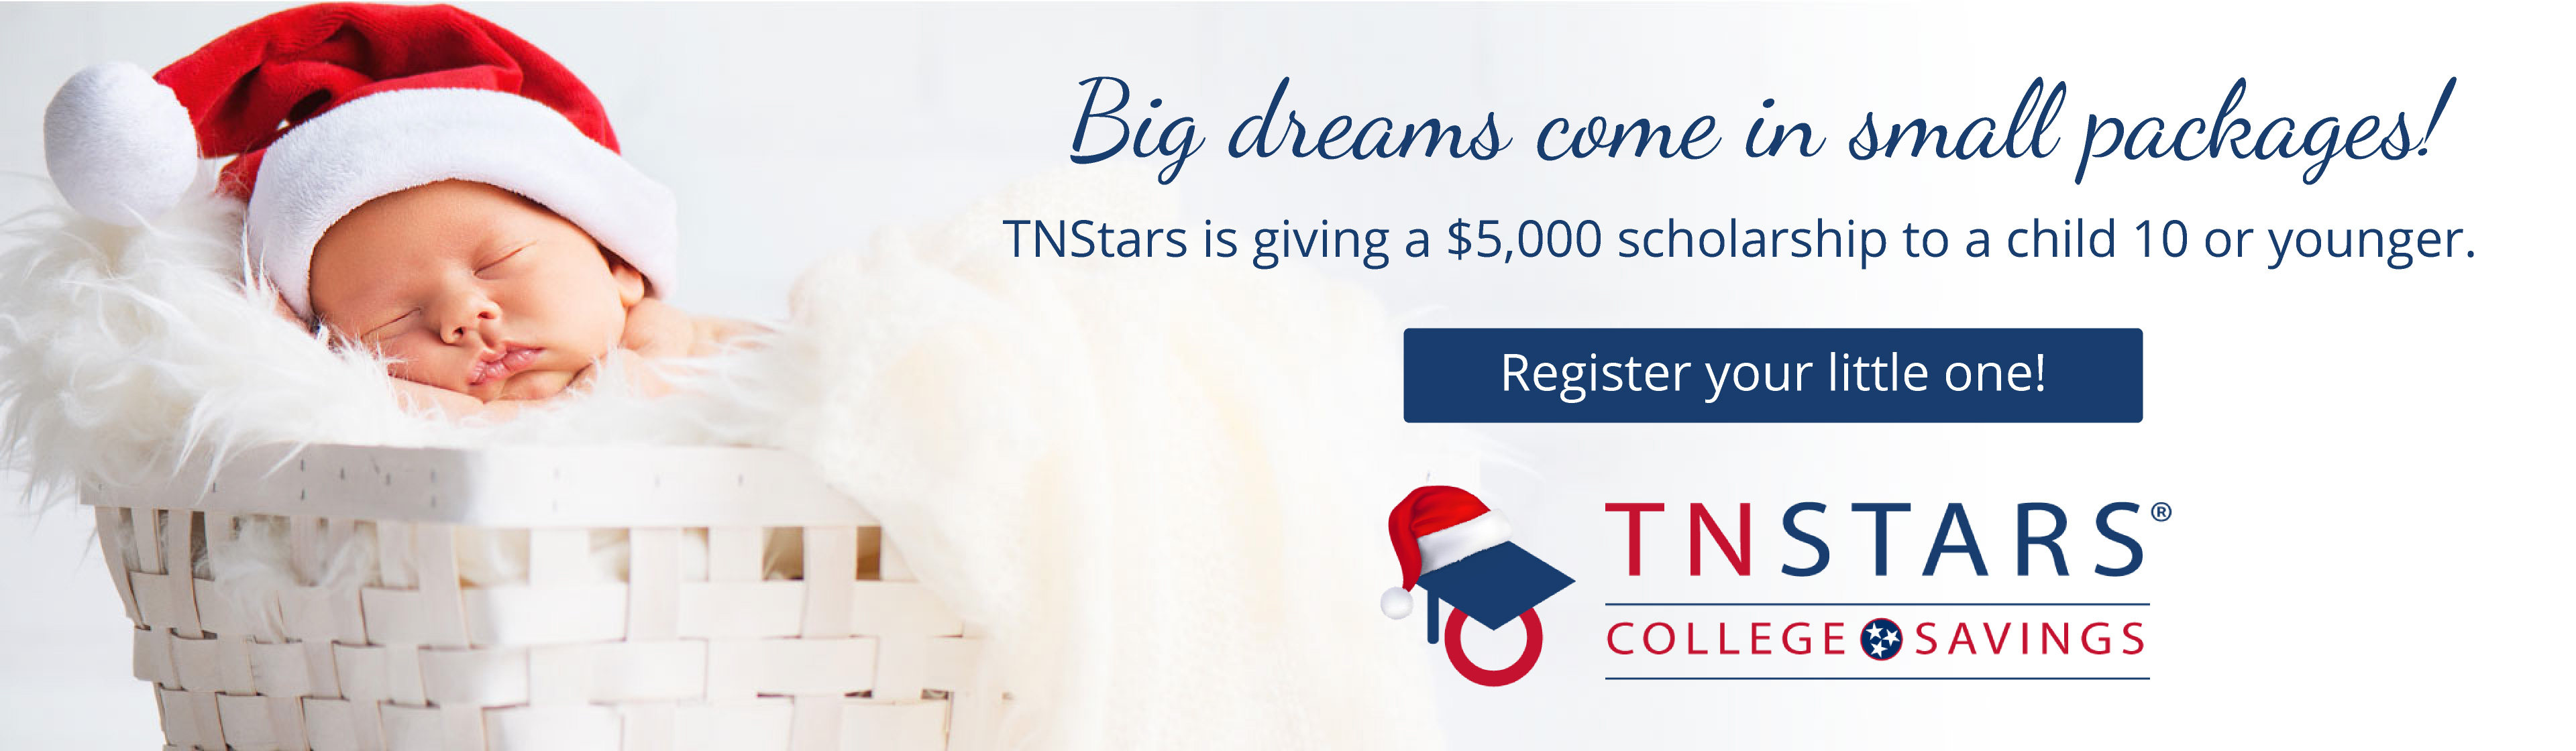 Big things come in small packages! TNStars is giving a $5,000 scholarship to a child 10 or younger. Register your little one! TNStars College Savings. Photo of a baby with a Santa hat in a basket.